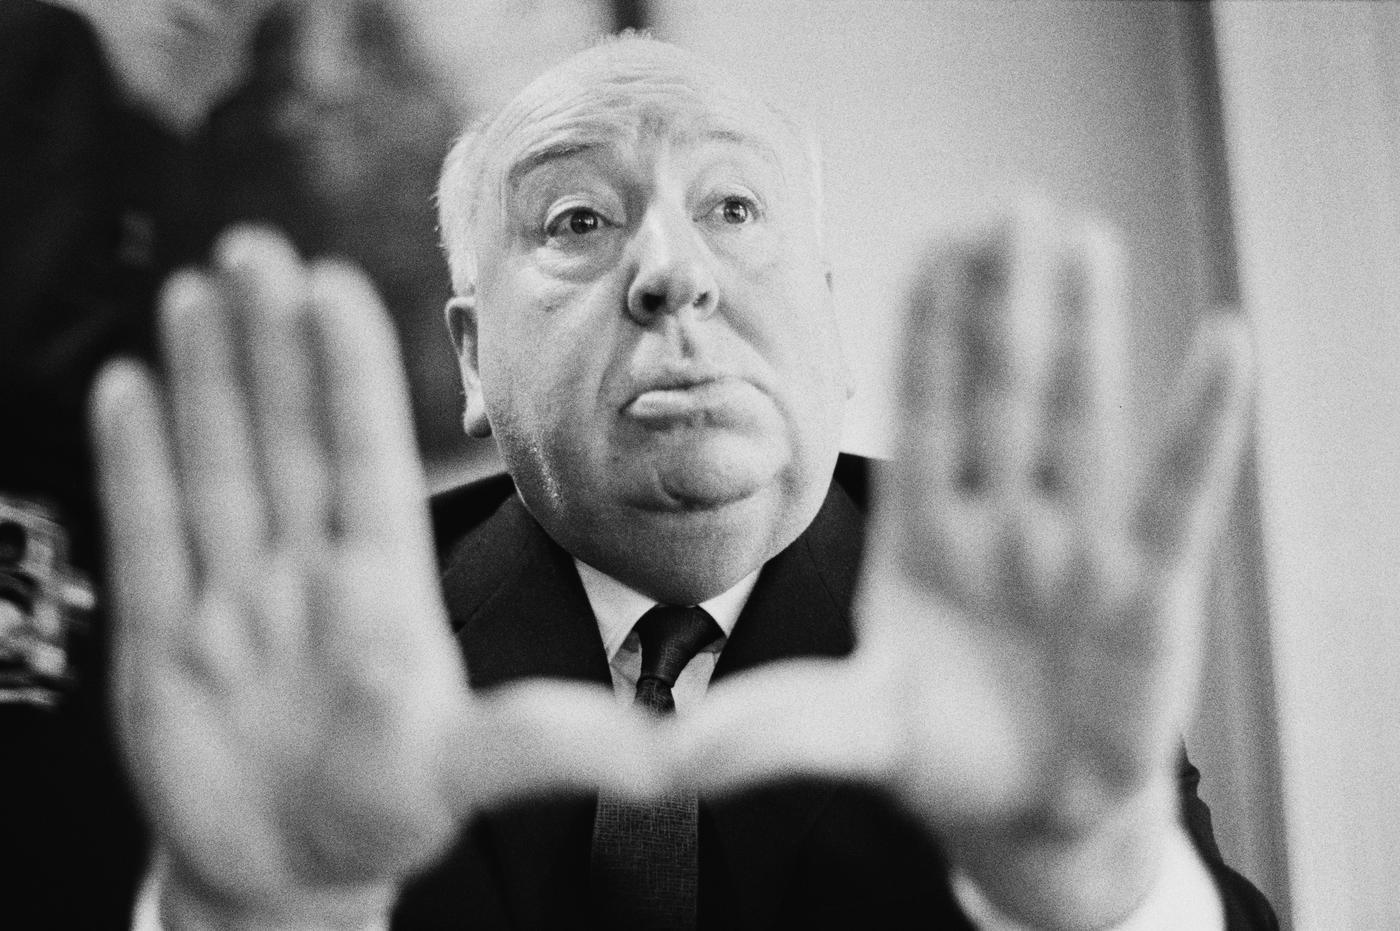 Alfred Hitchcock in Alfred Hitchcock movies on Netflix